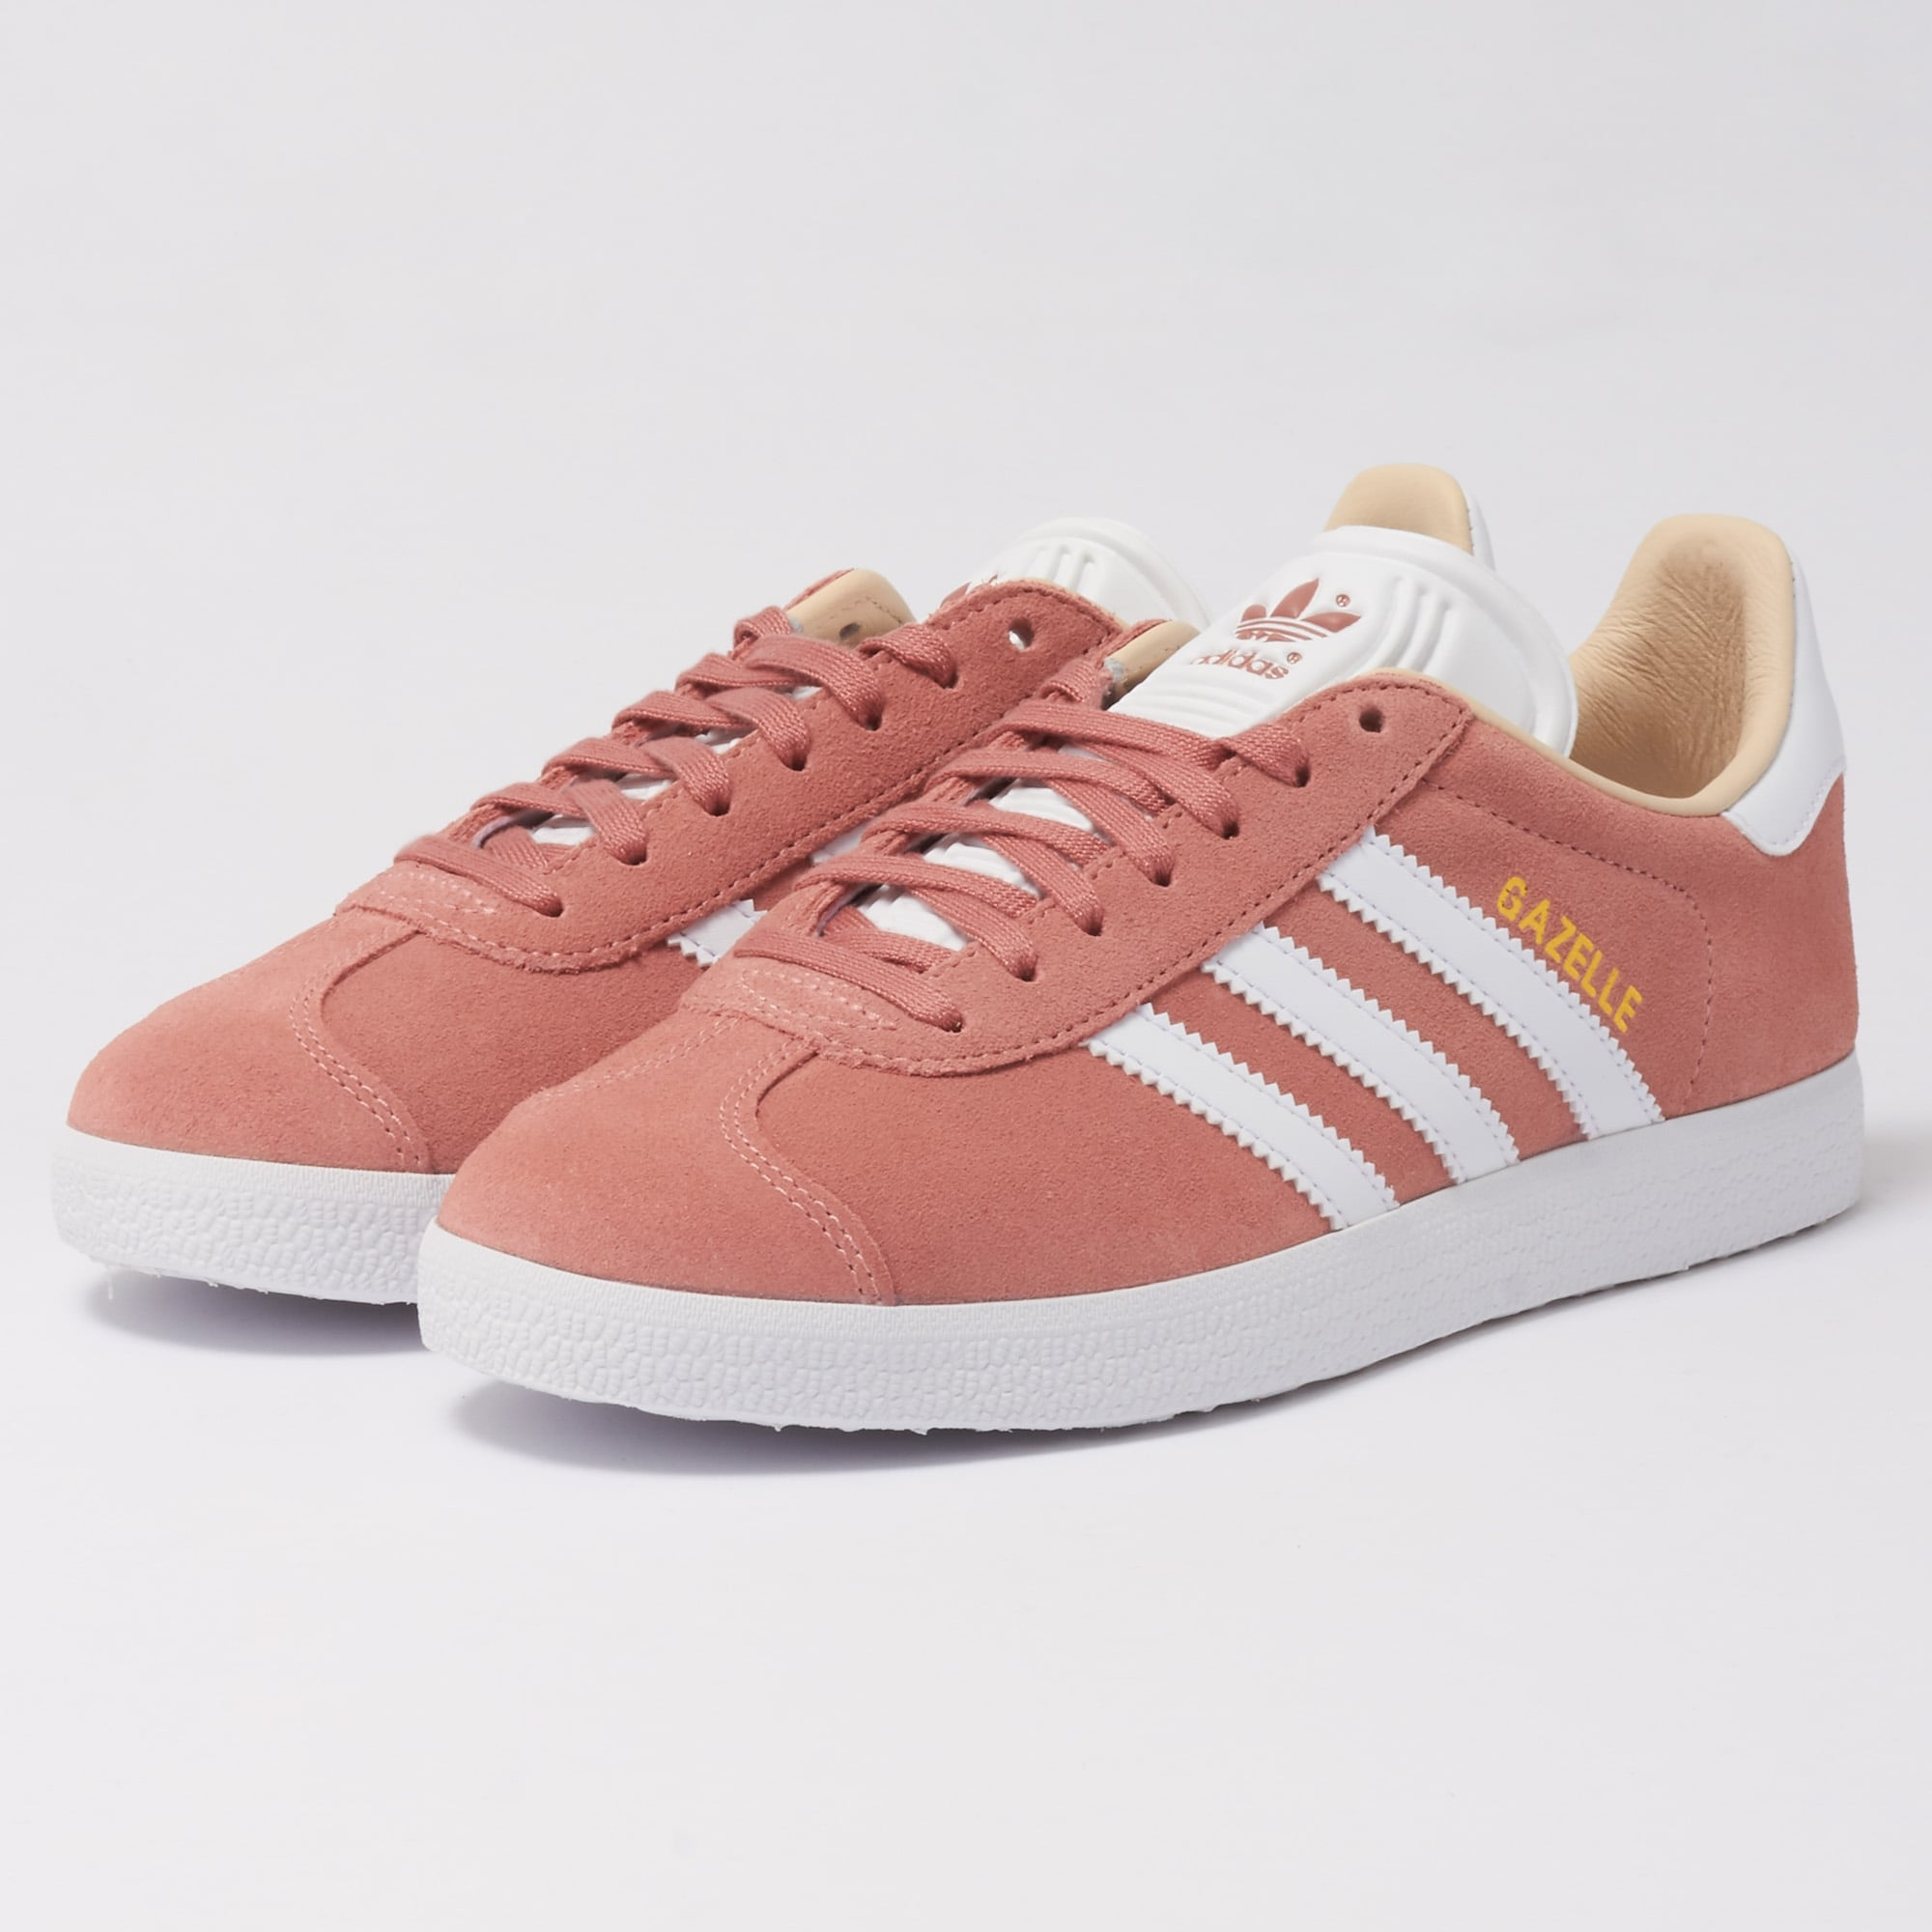 women's adidas gazelle casual shoes pink nz